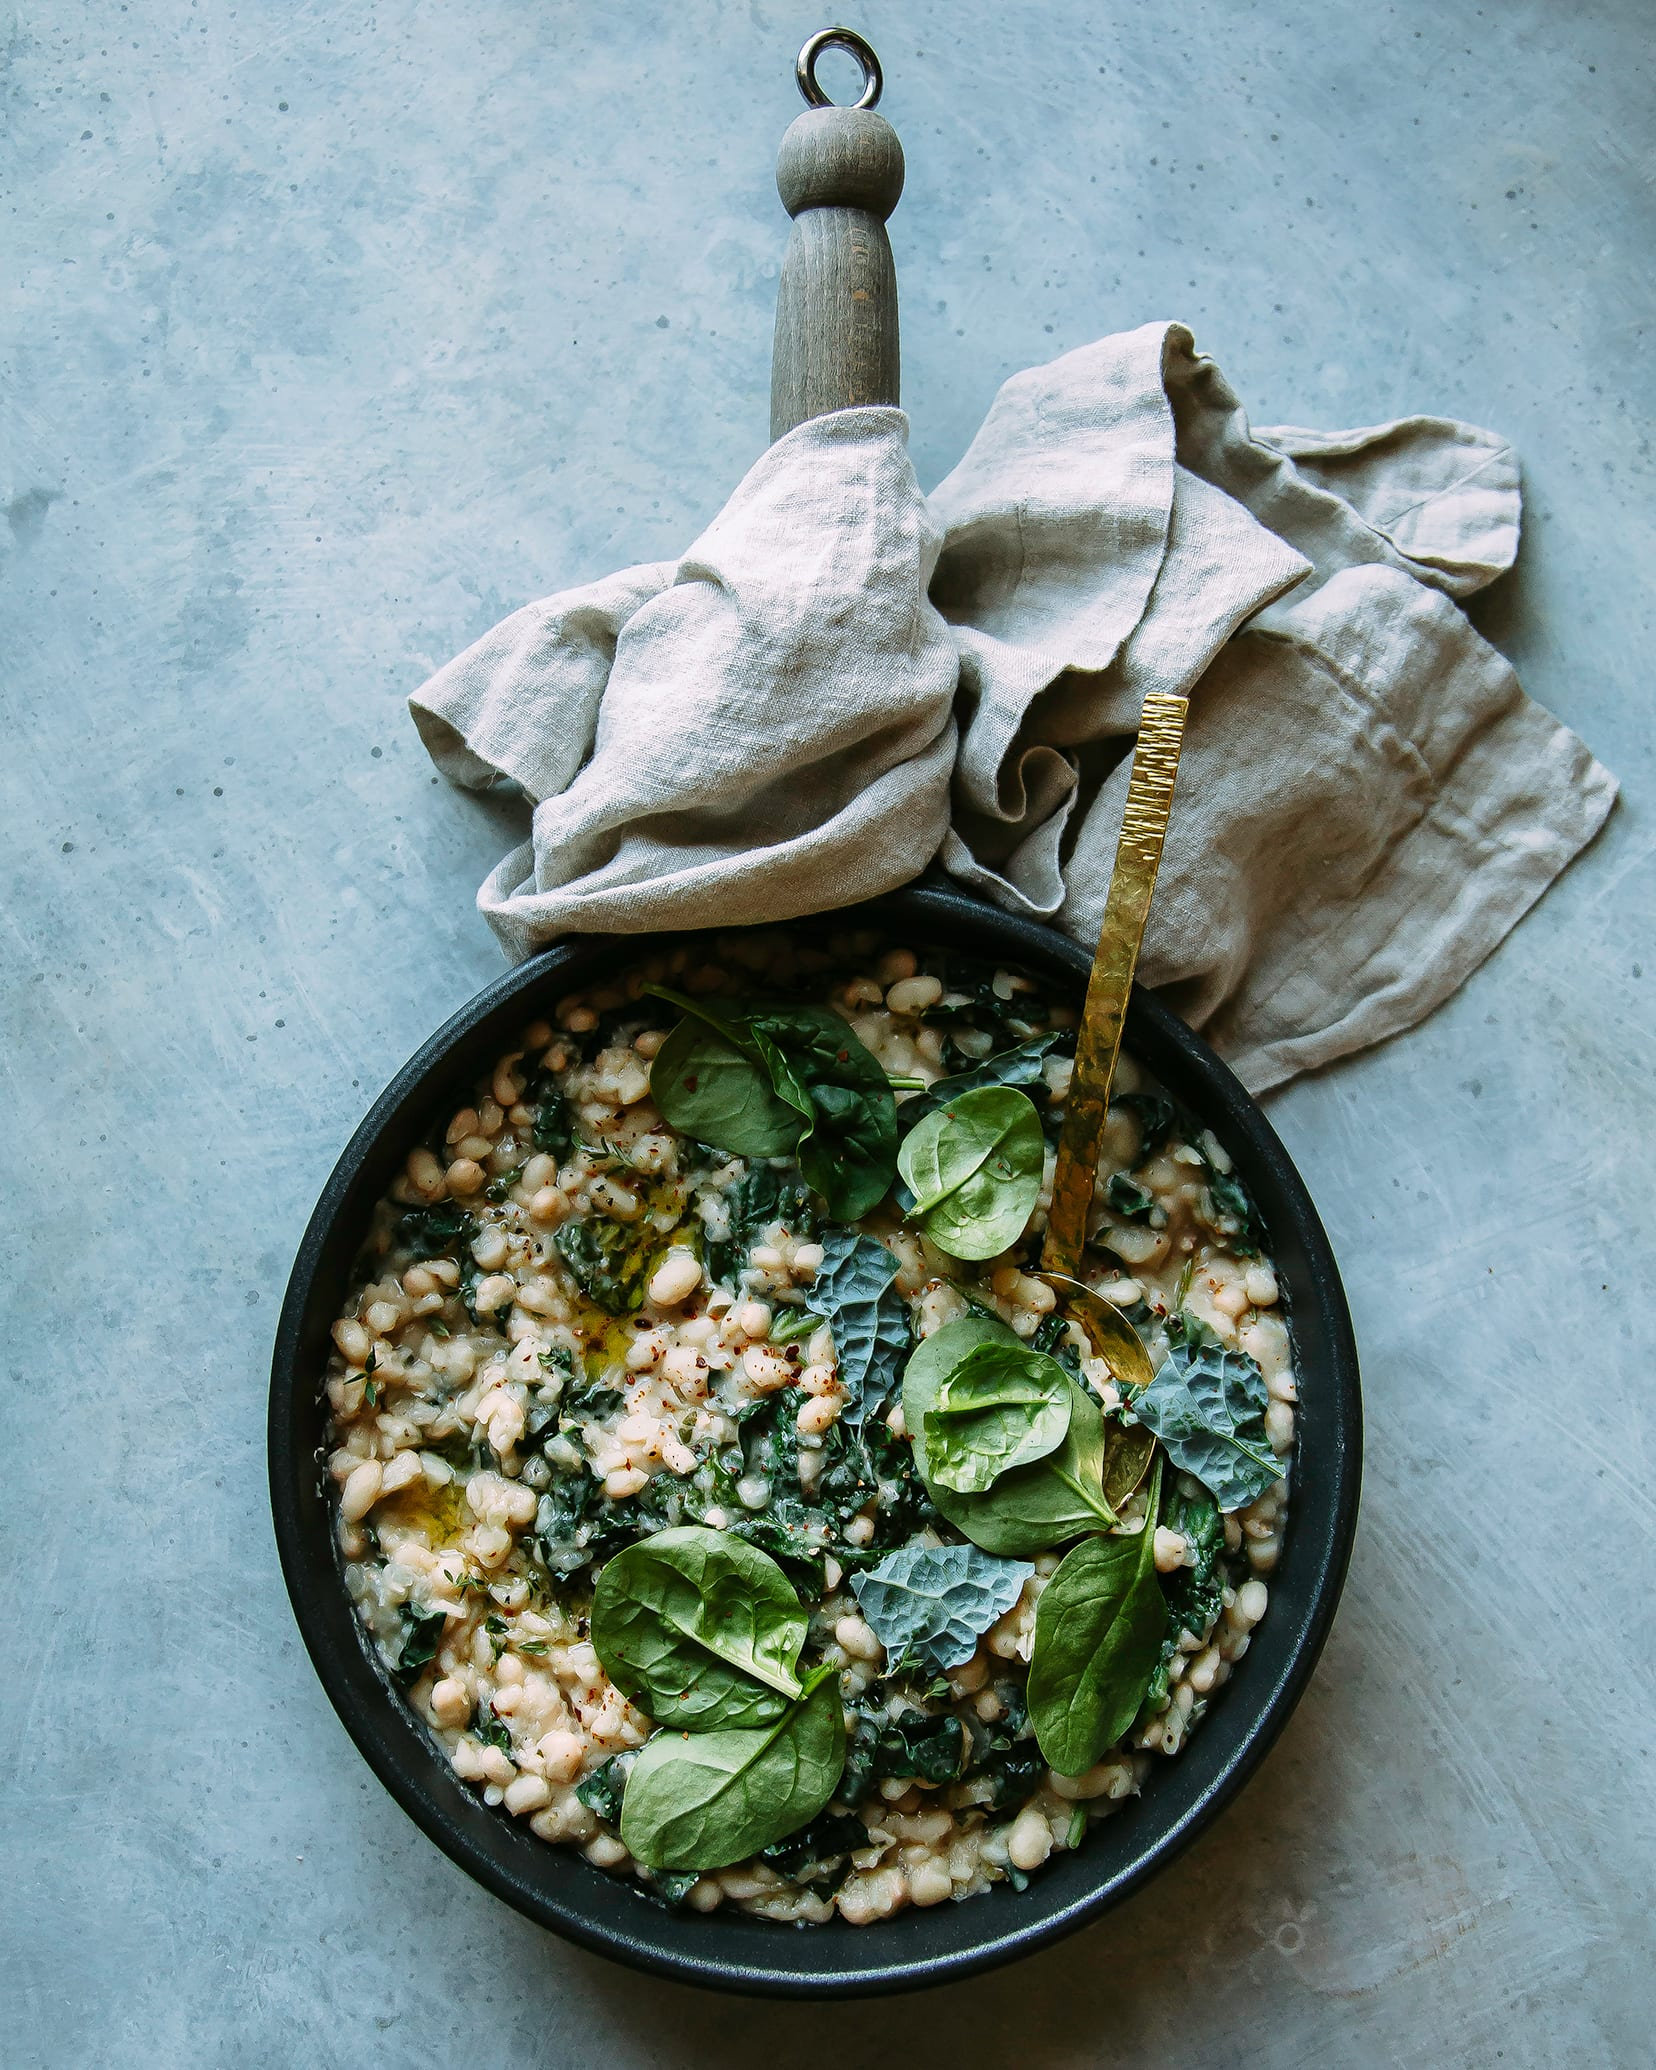 Overhead shot of creamy white beans with greens in a skillet.